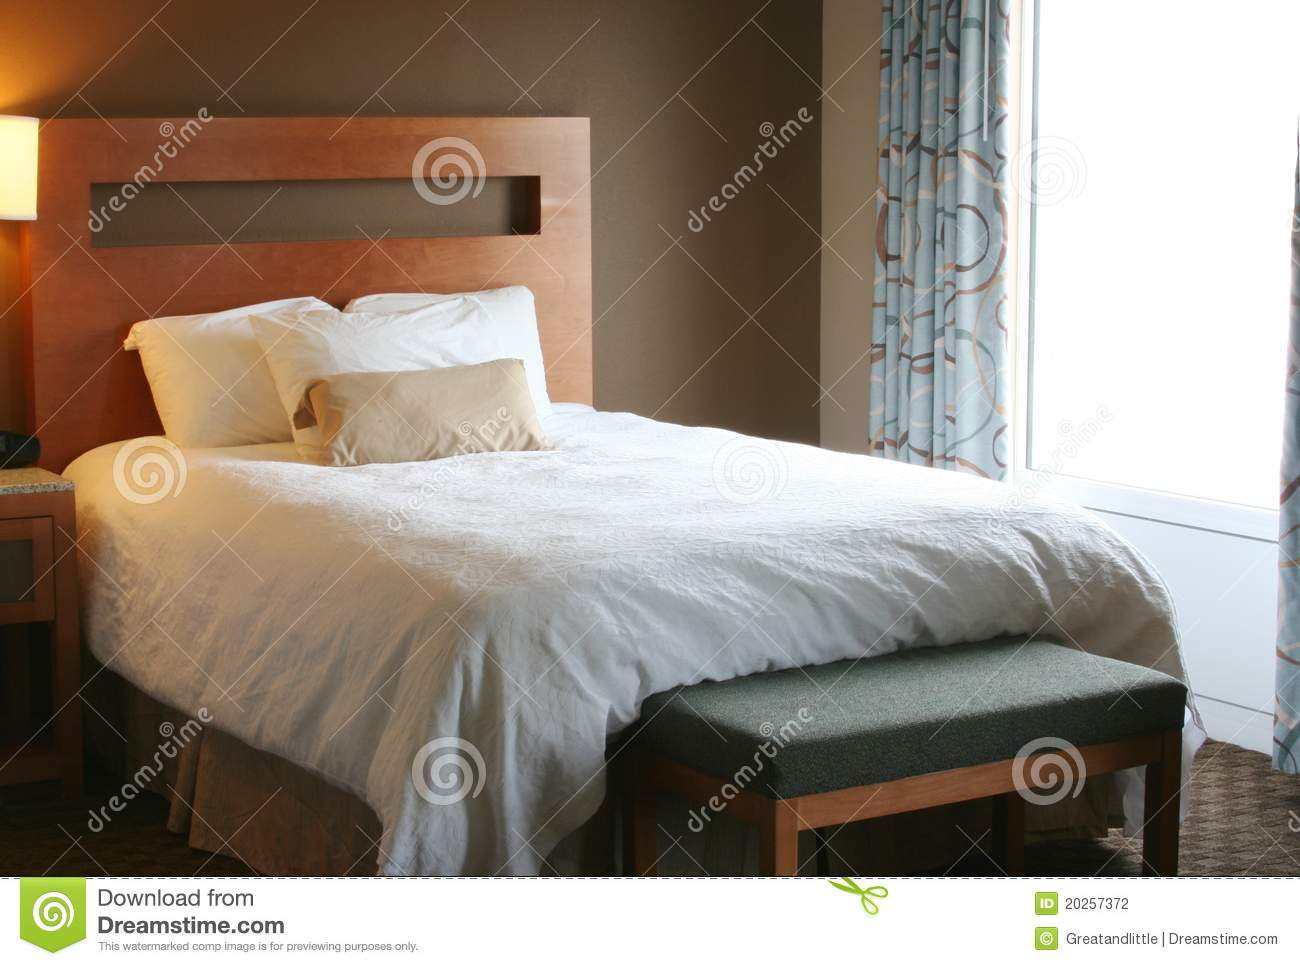 Bedroom With White Blanket On Bed Stock Photo Image